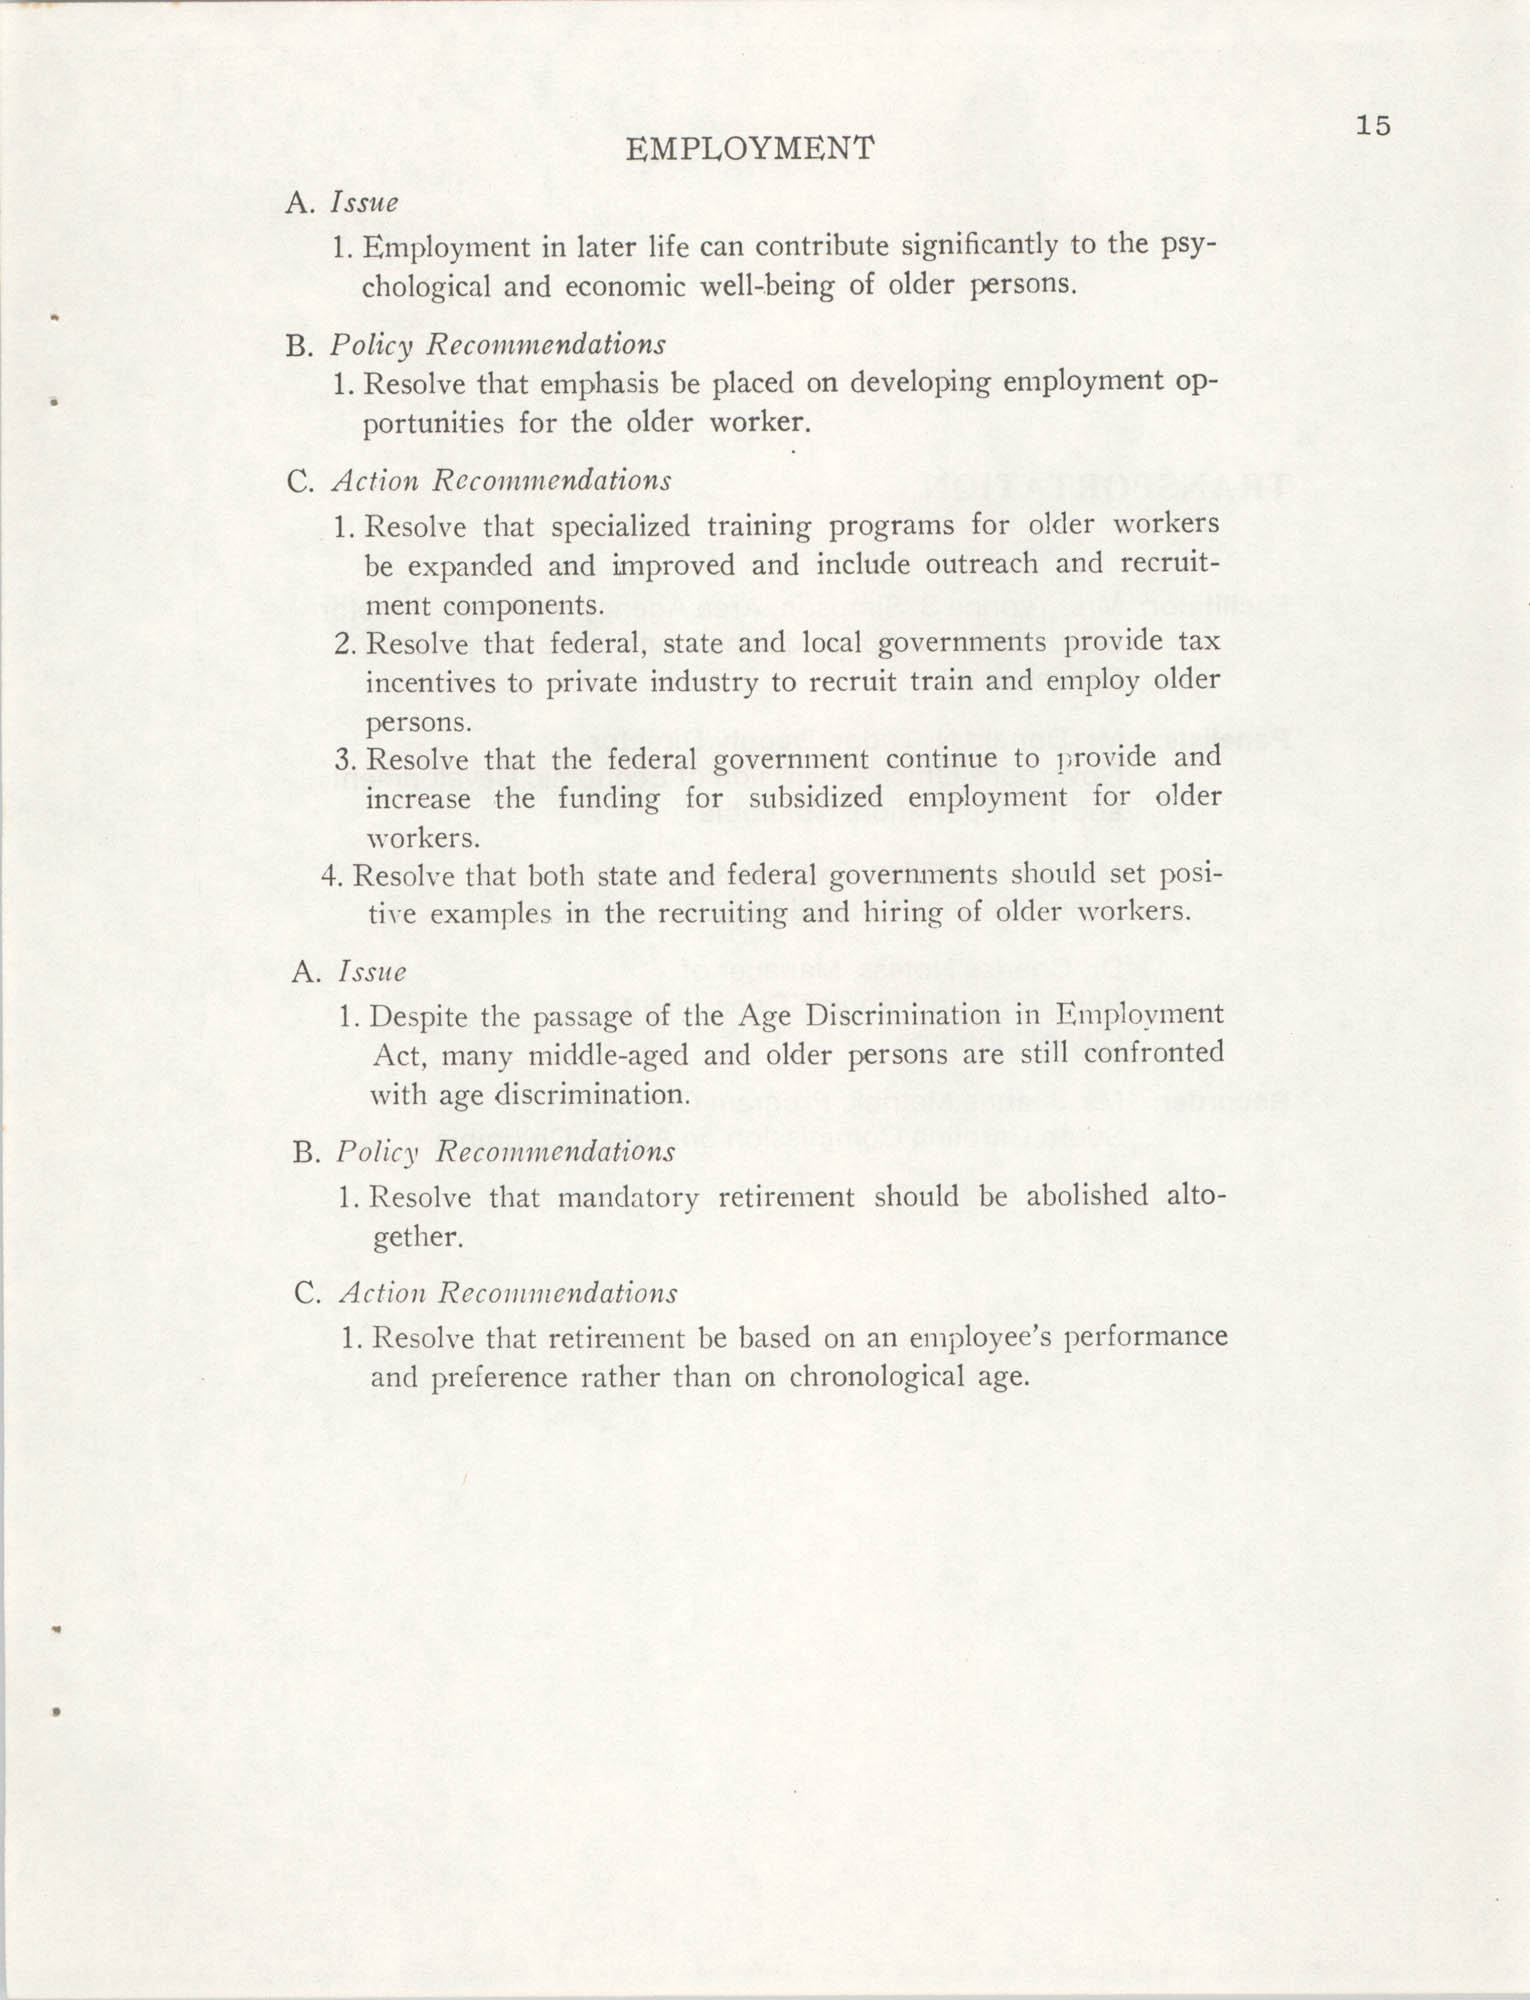 South Carolina Governor's White House Conference on Aging Proceedings, 1981, Page 15